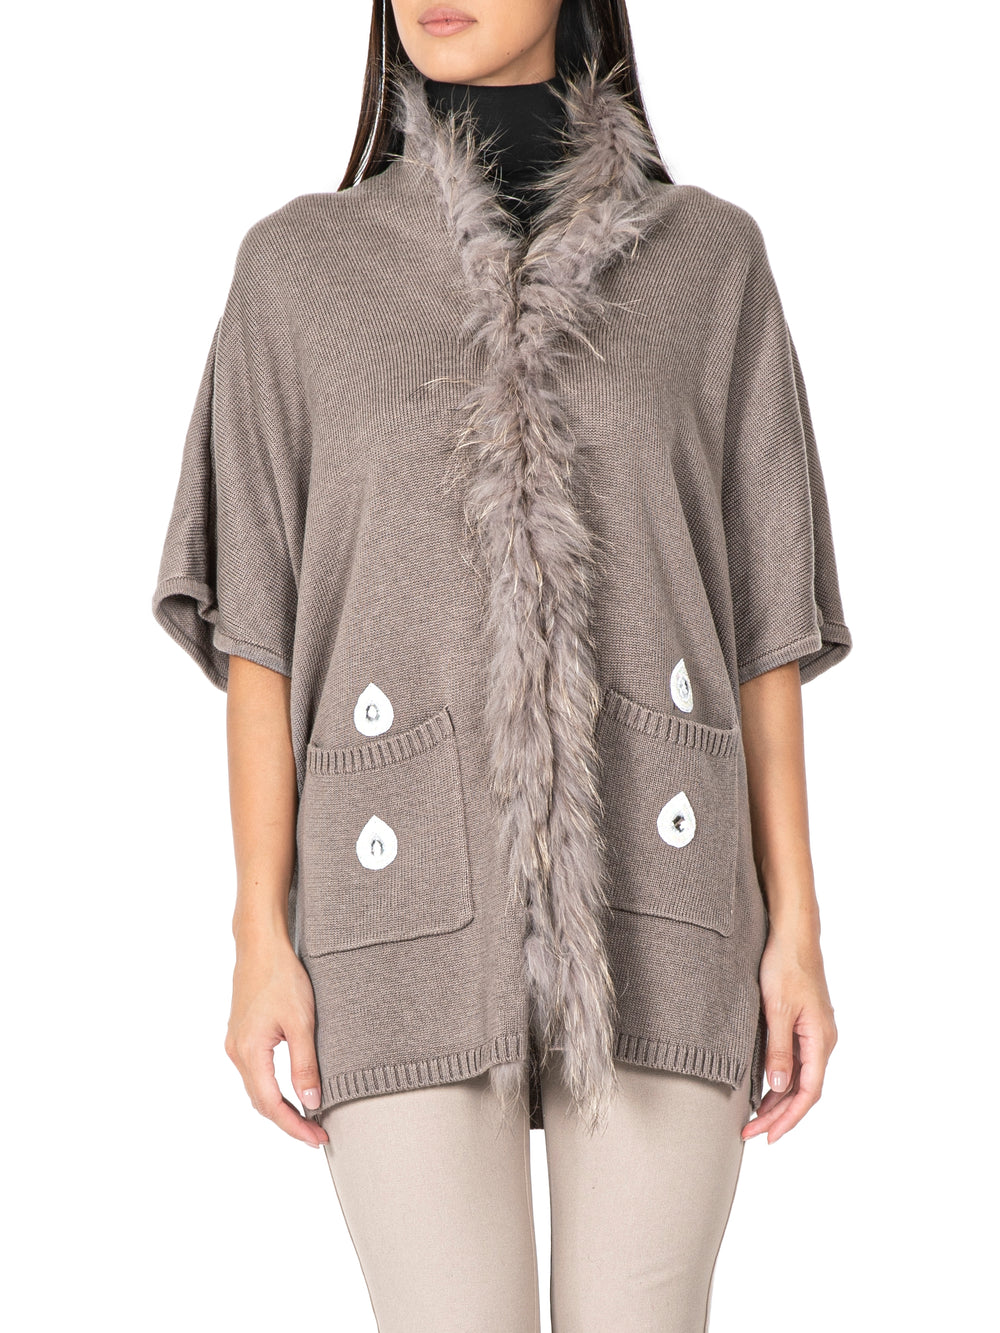 Embellished Fur-Trimmed Cashmere Jacket